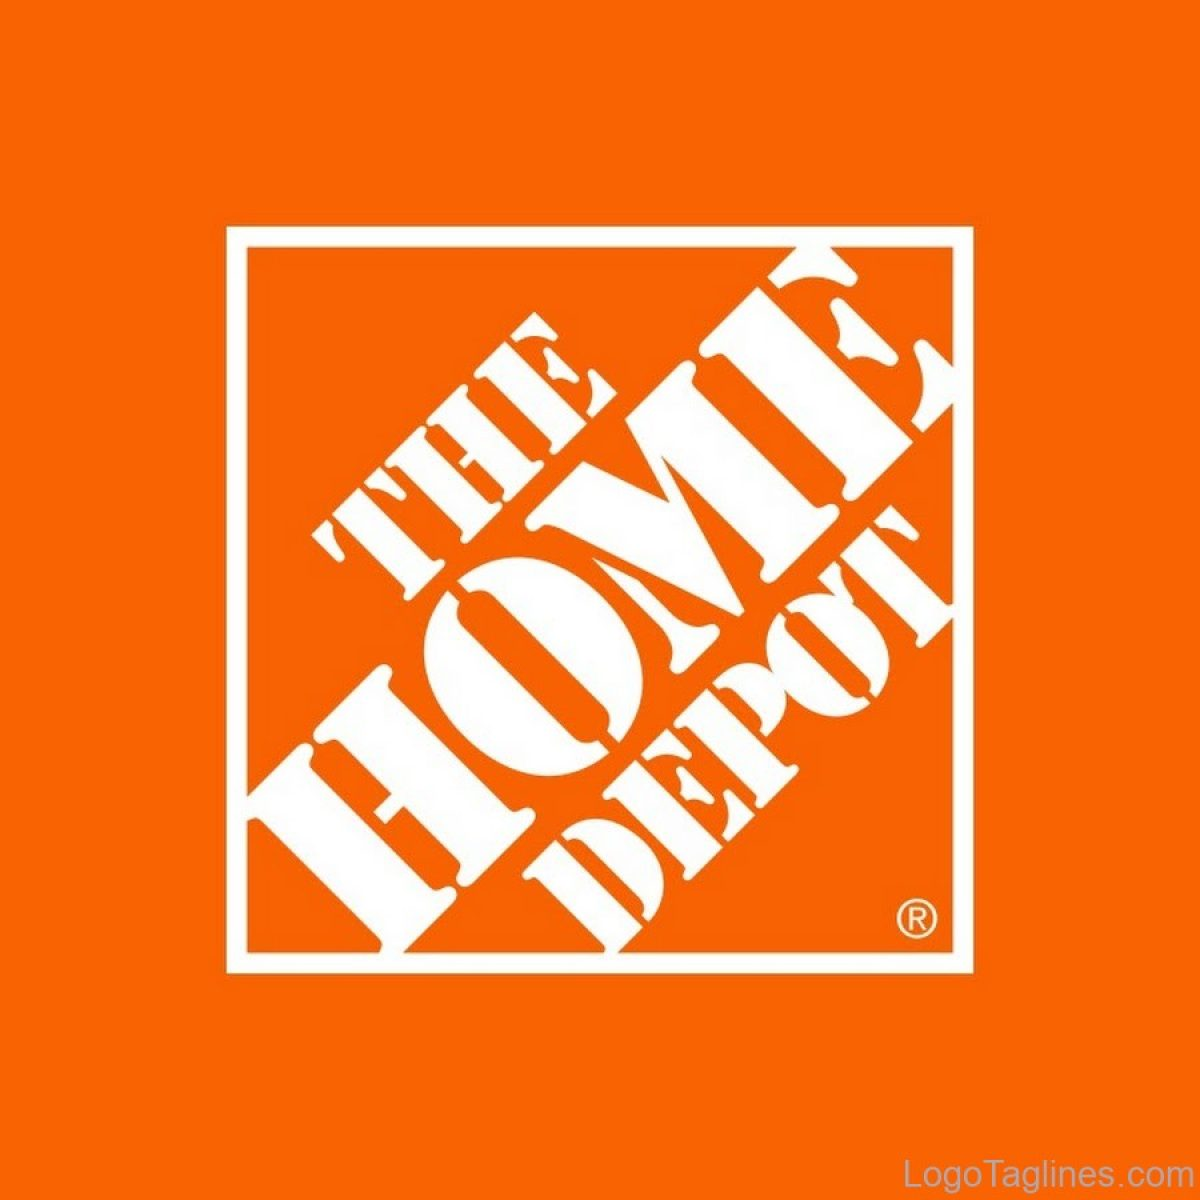 Home Depot Logo - Find Evermark products